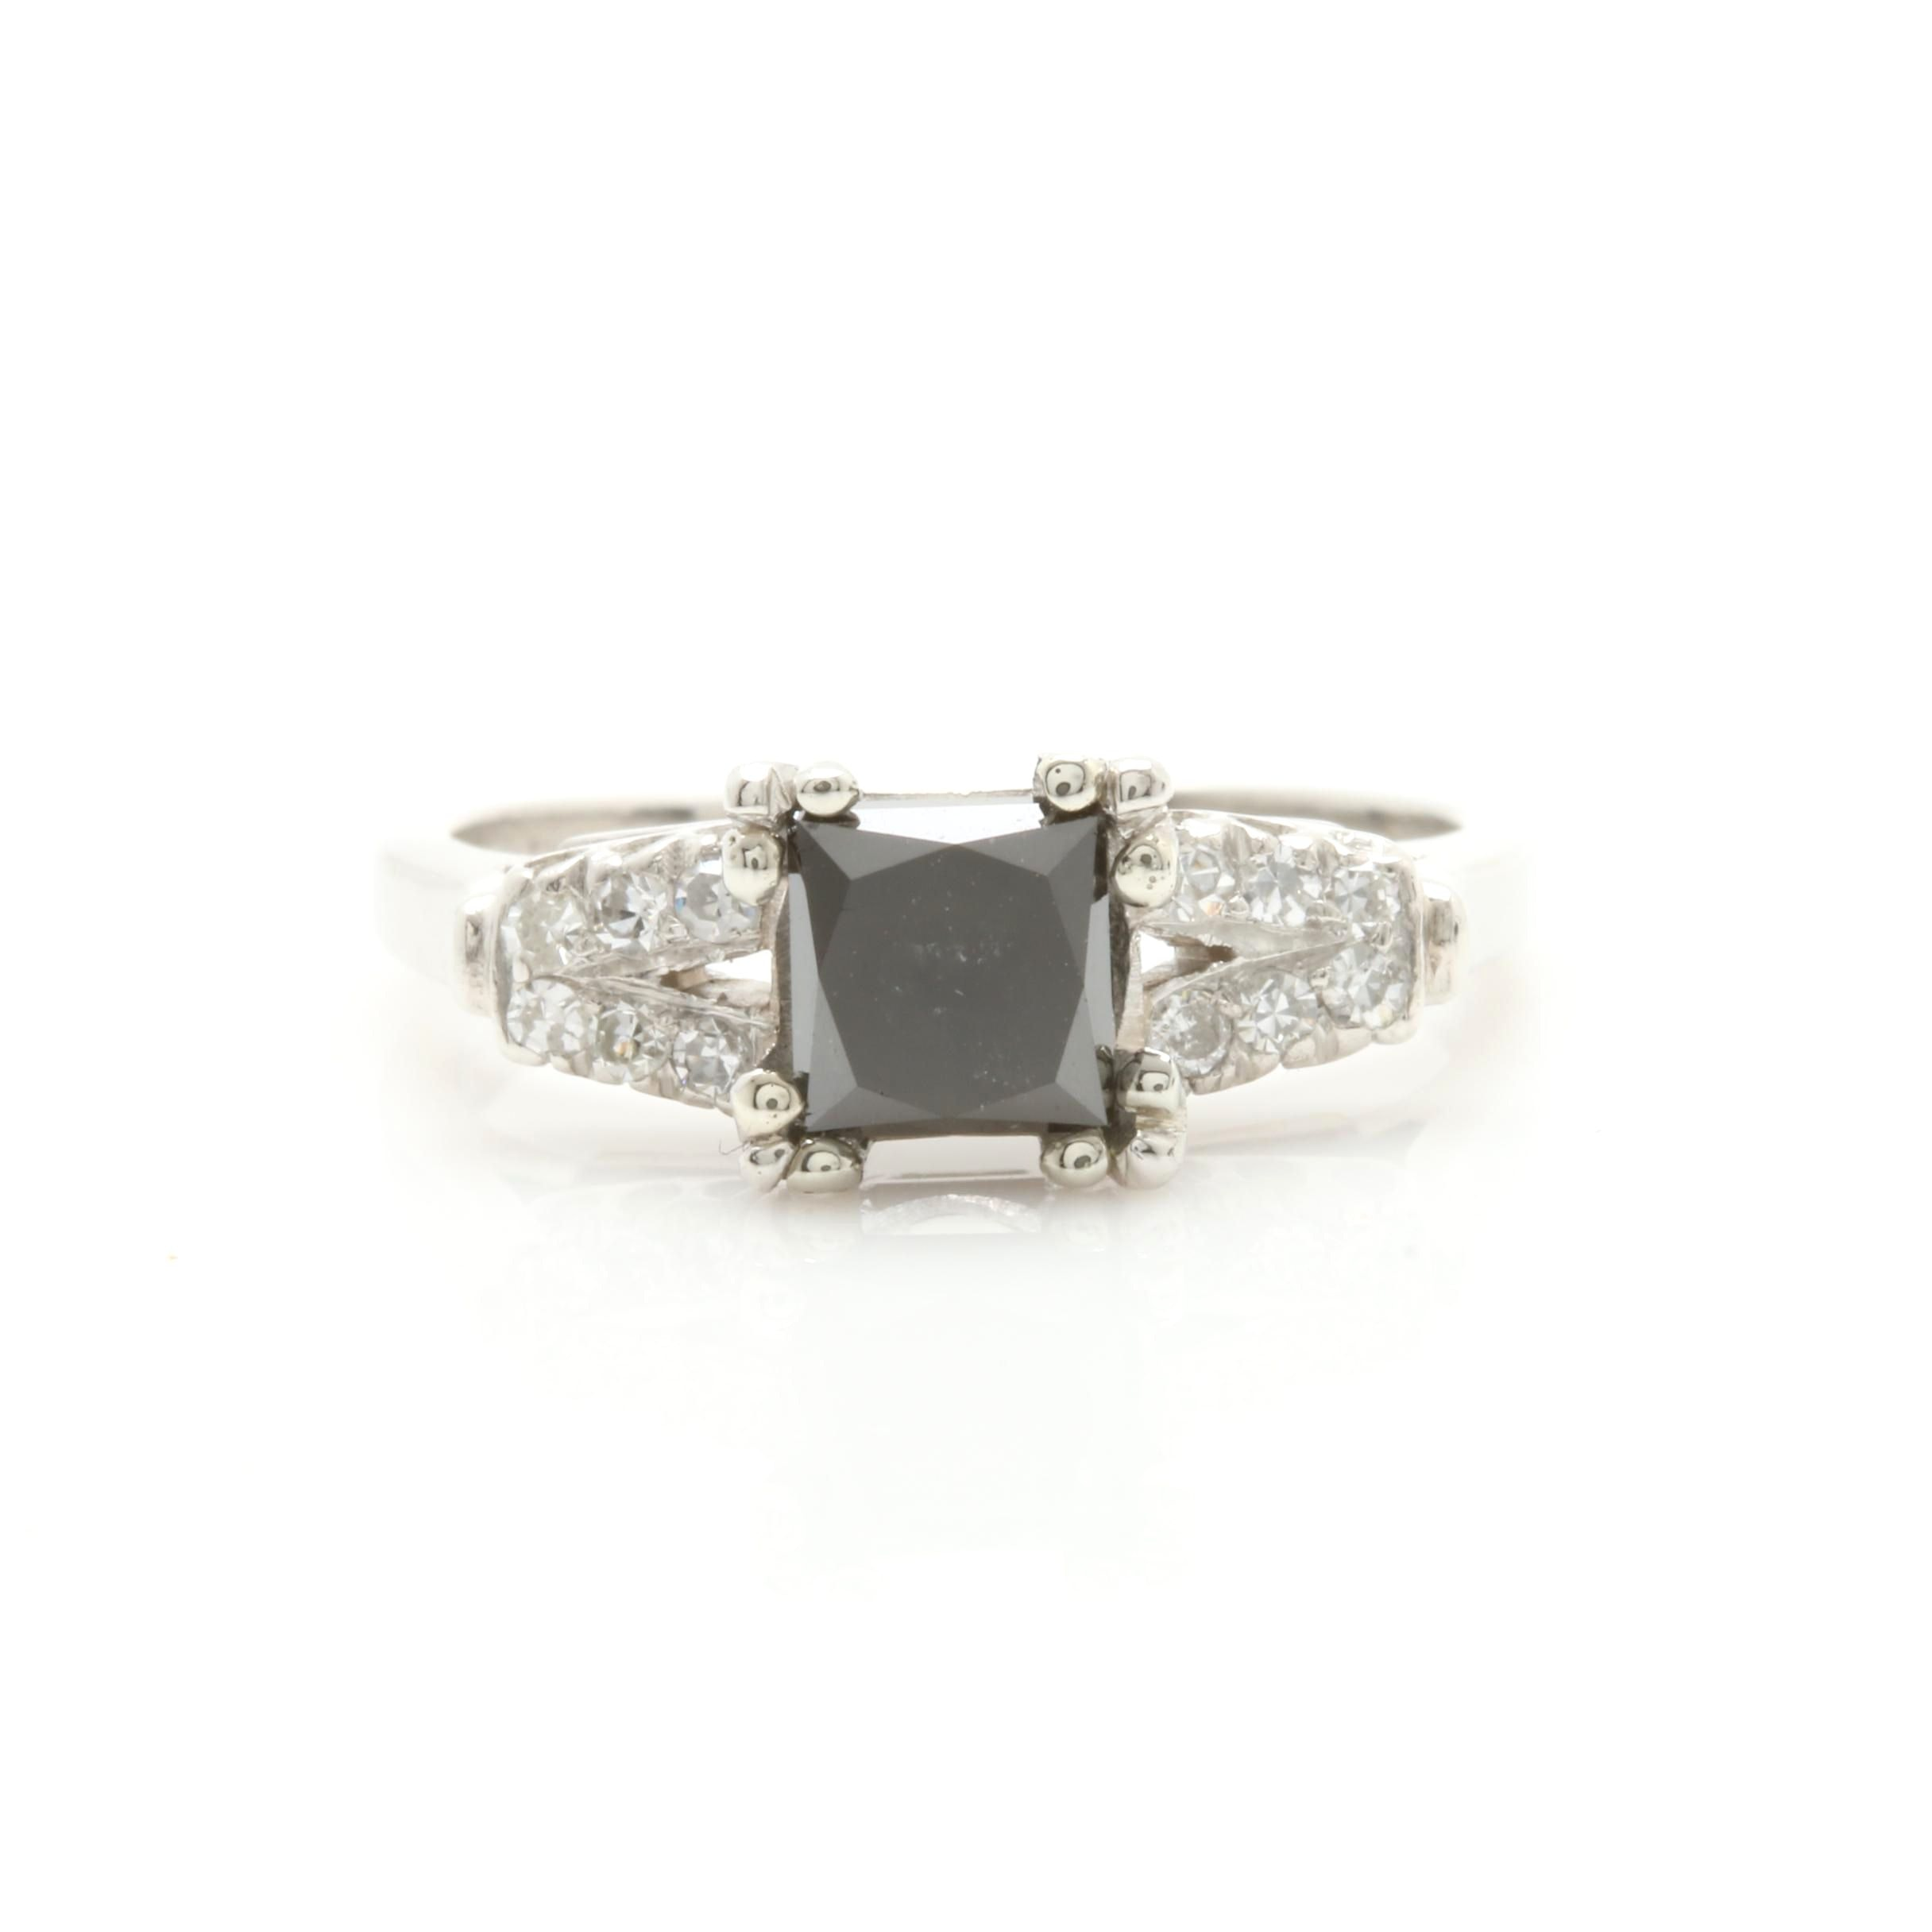 Platinum 1.14 CTW Diamond Ring